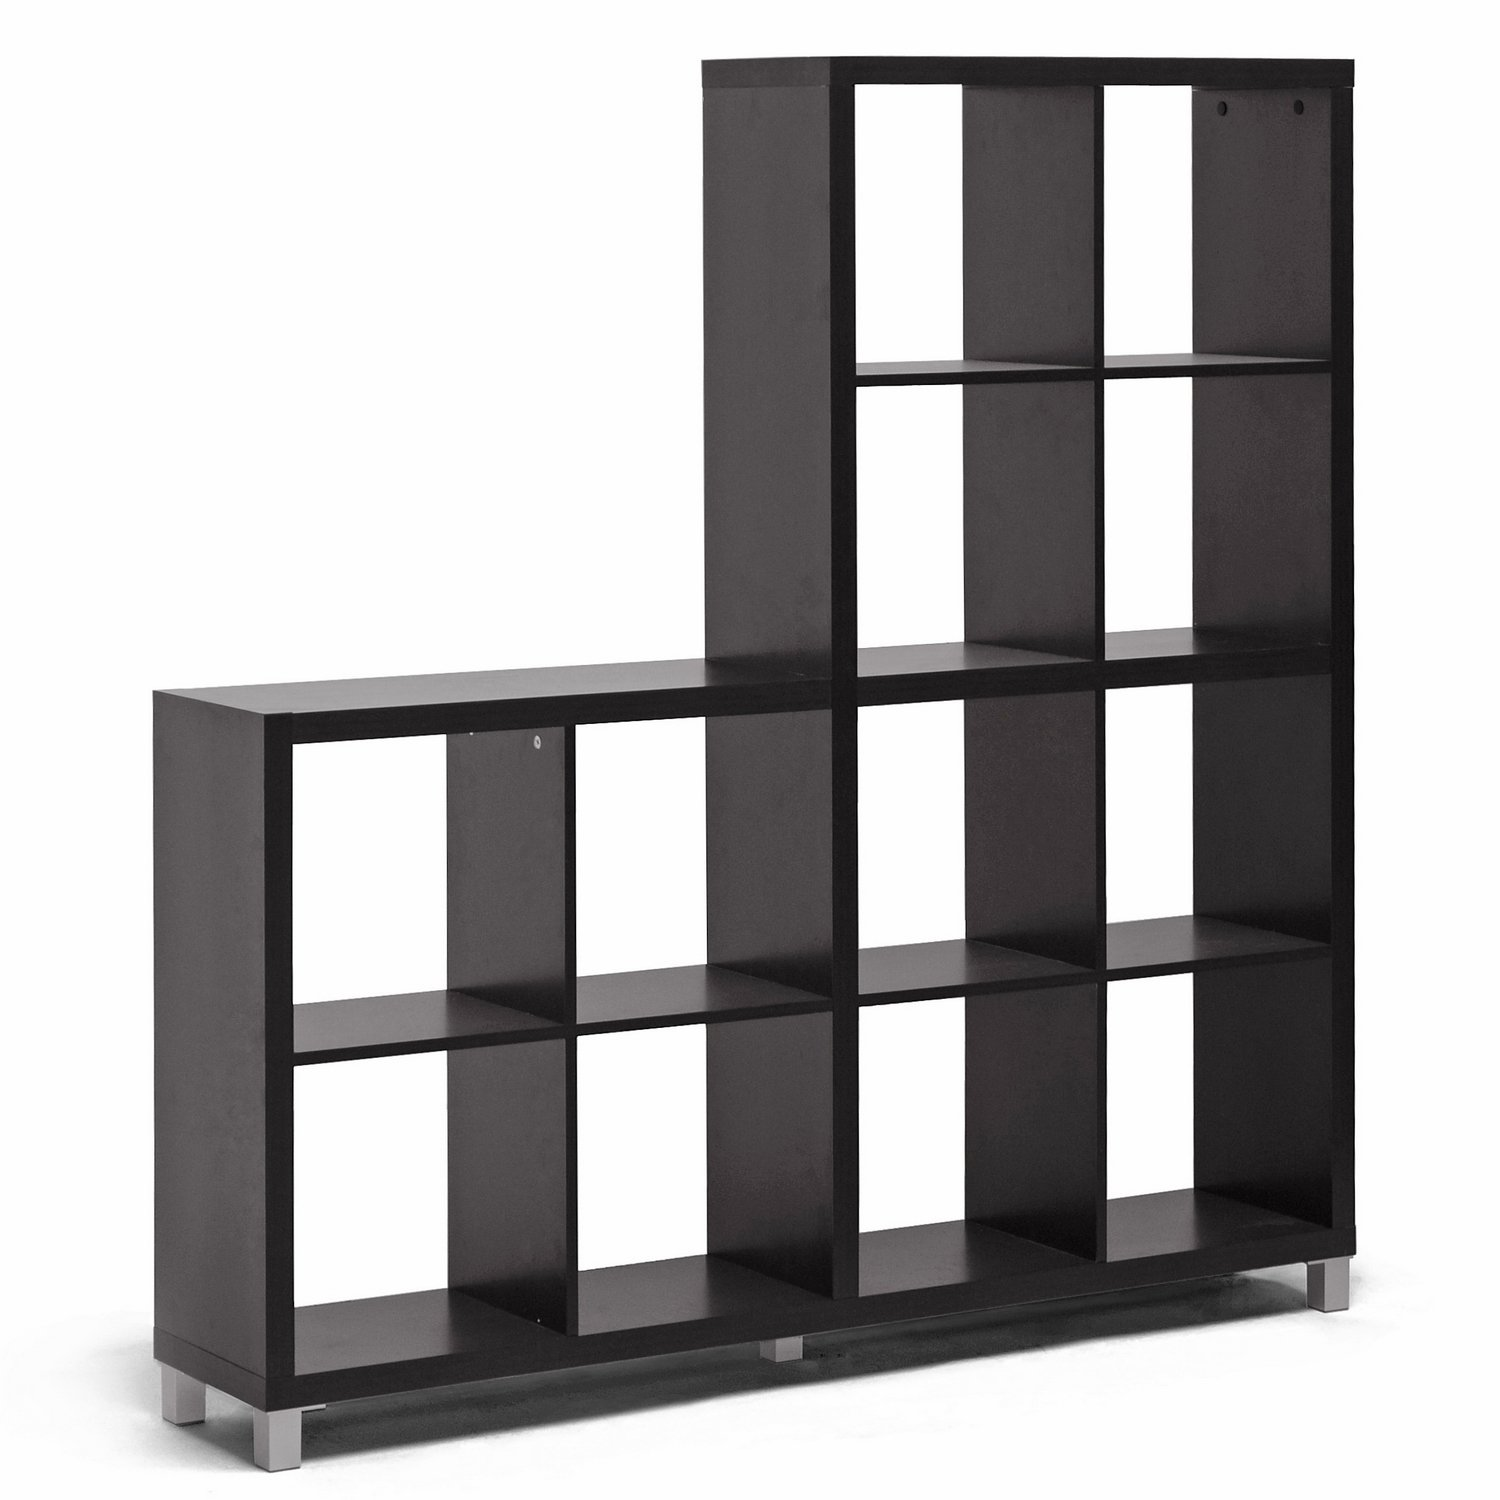 Amazon.com: Baxton Studio Sunna Modern Cube Shelving Unit, Dark Brown:  Kitchen & Dining